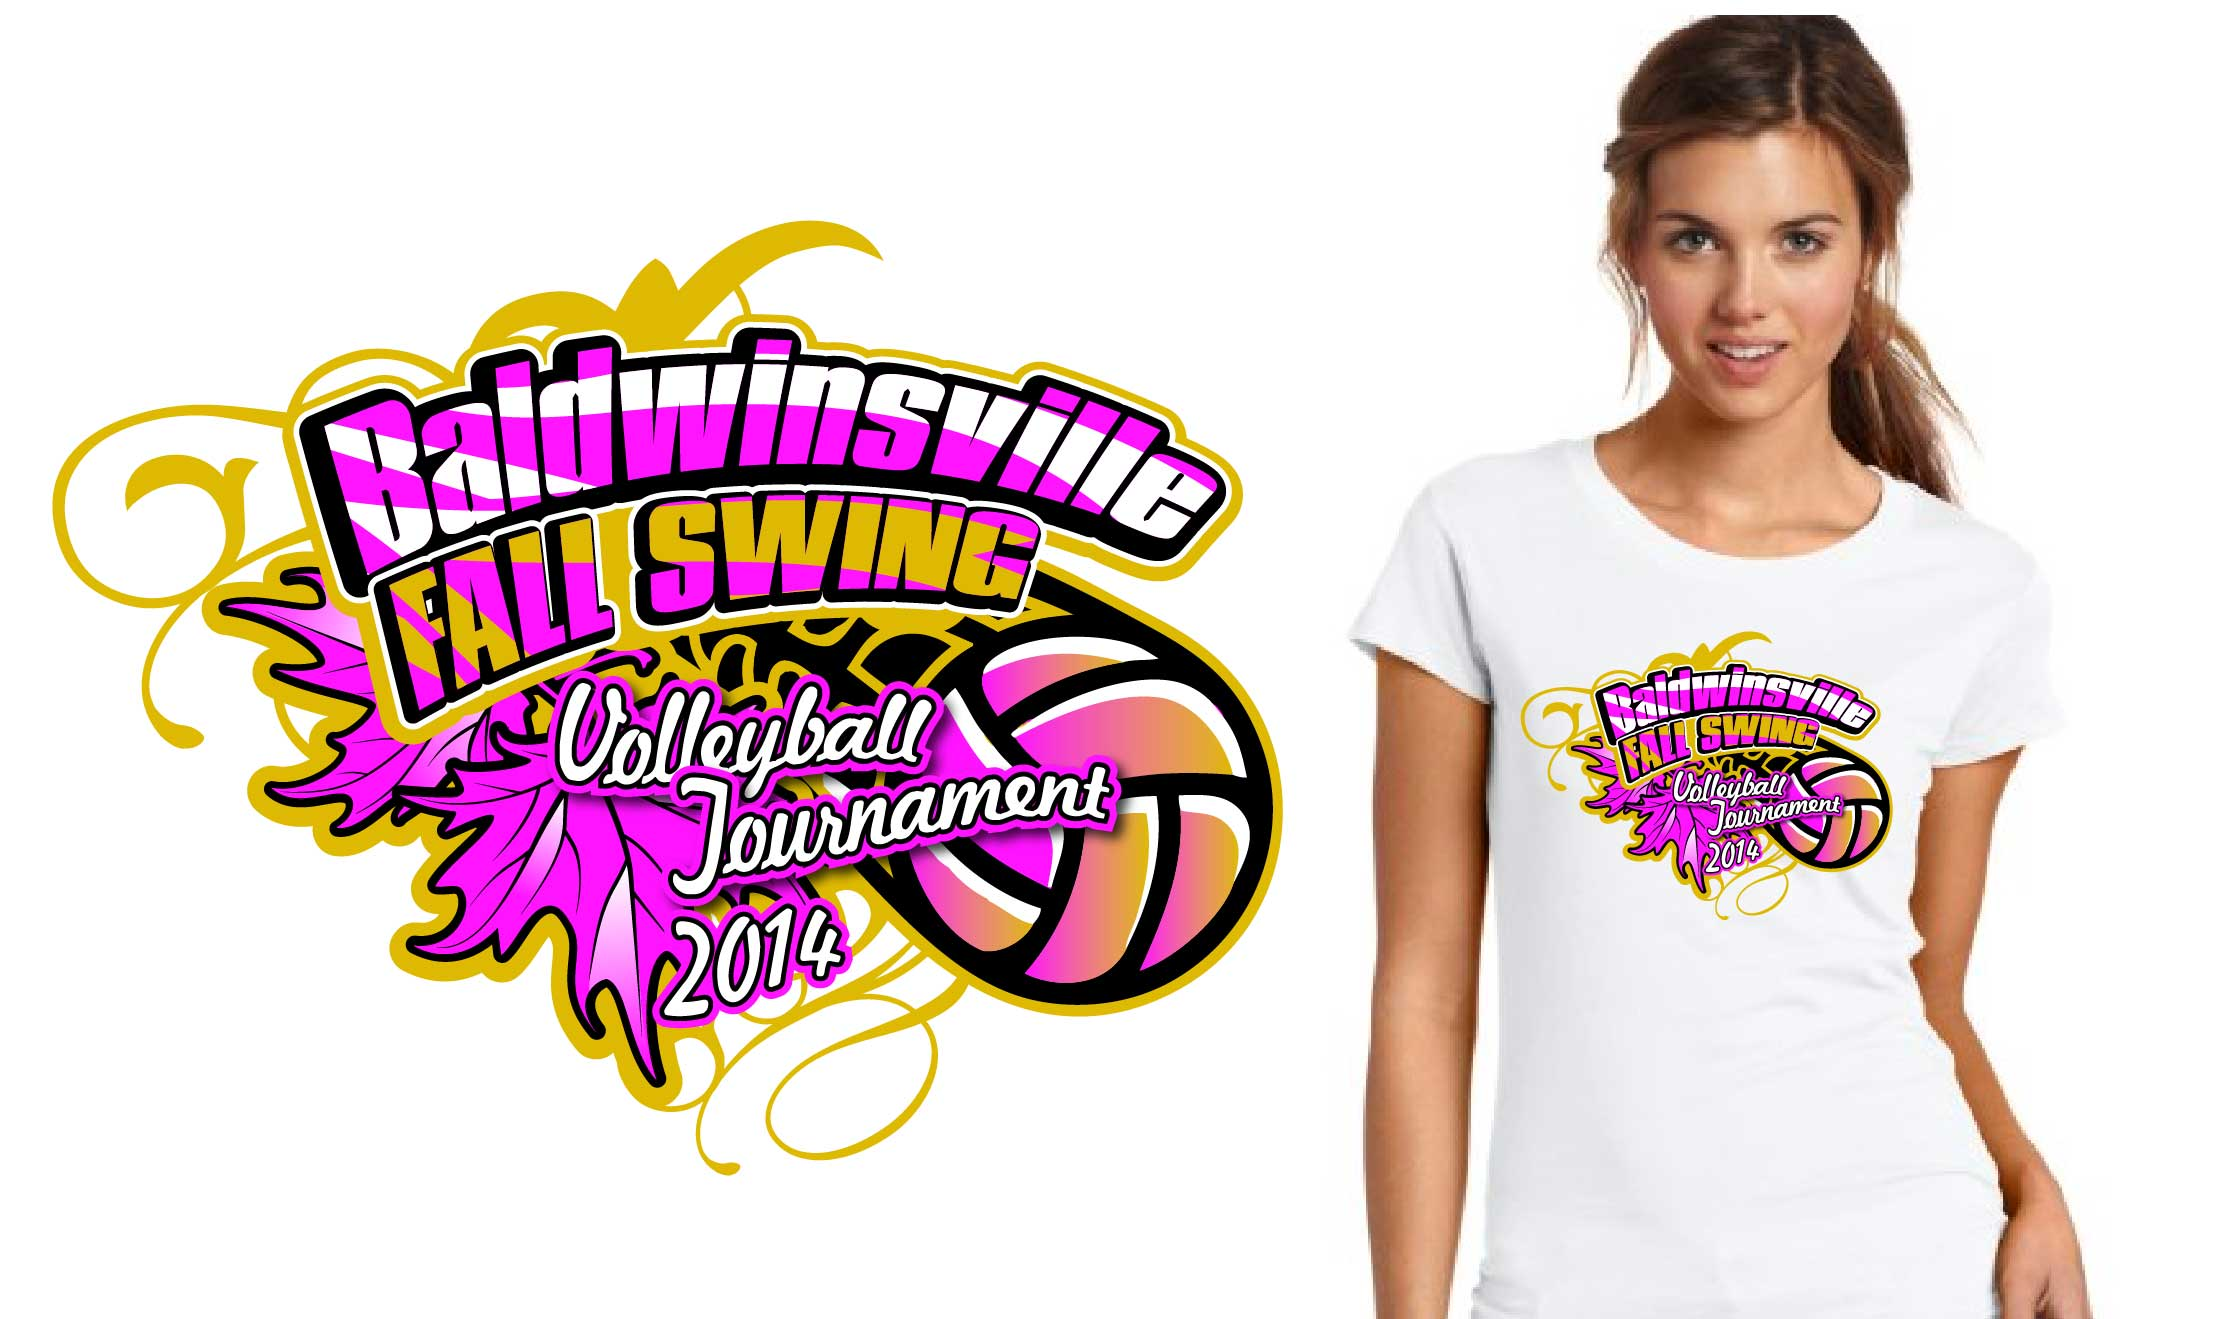 2014 Baldwinsville Fall Swing Volleyball Tournament tshirt design